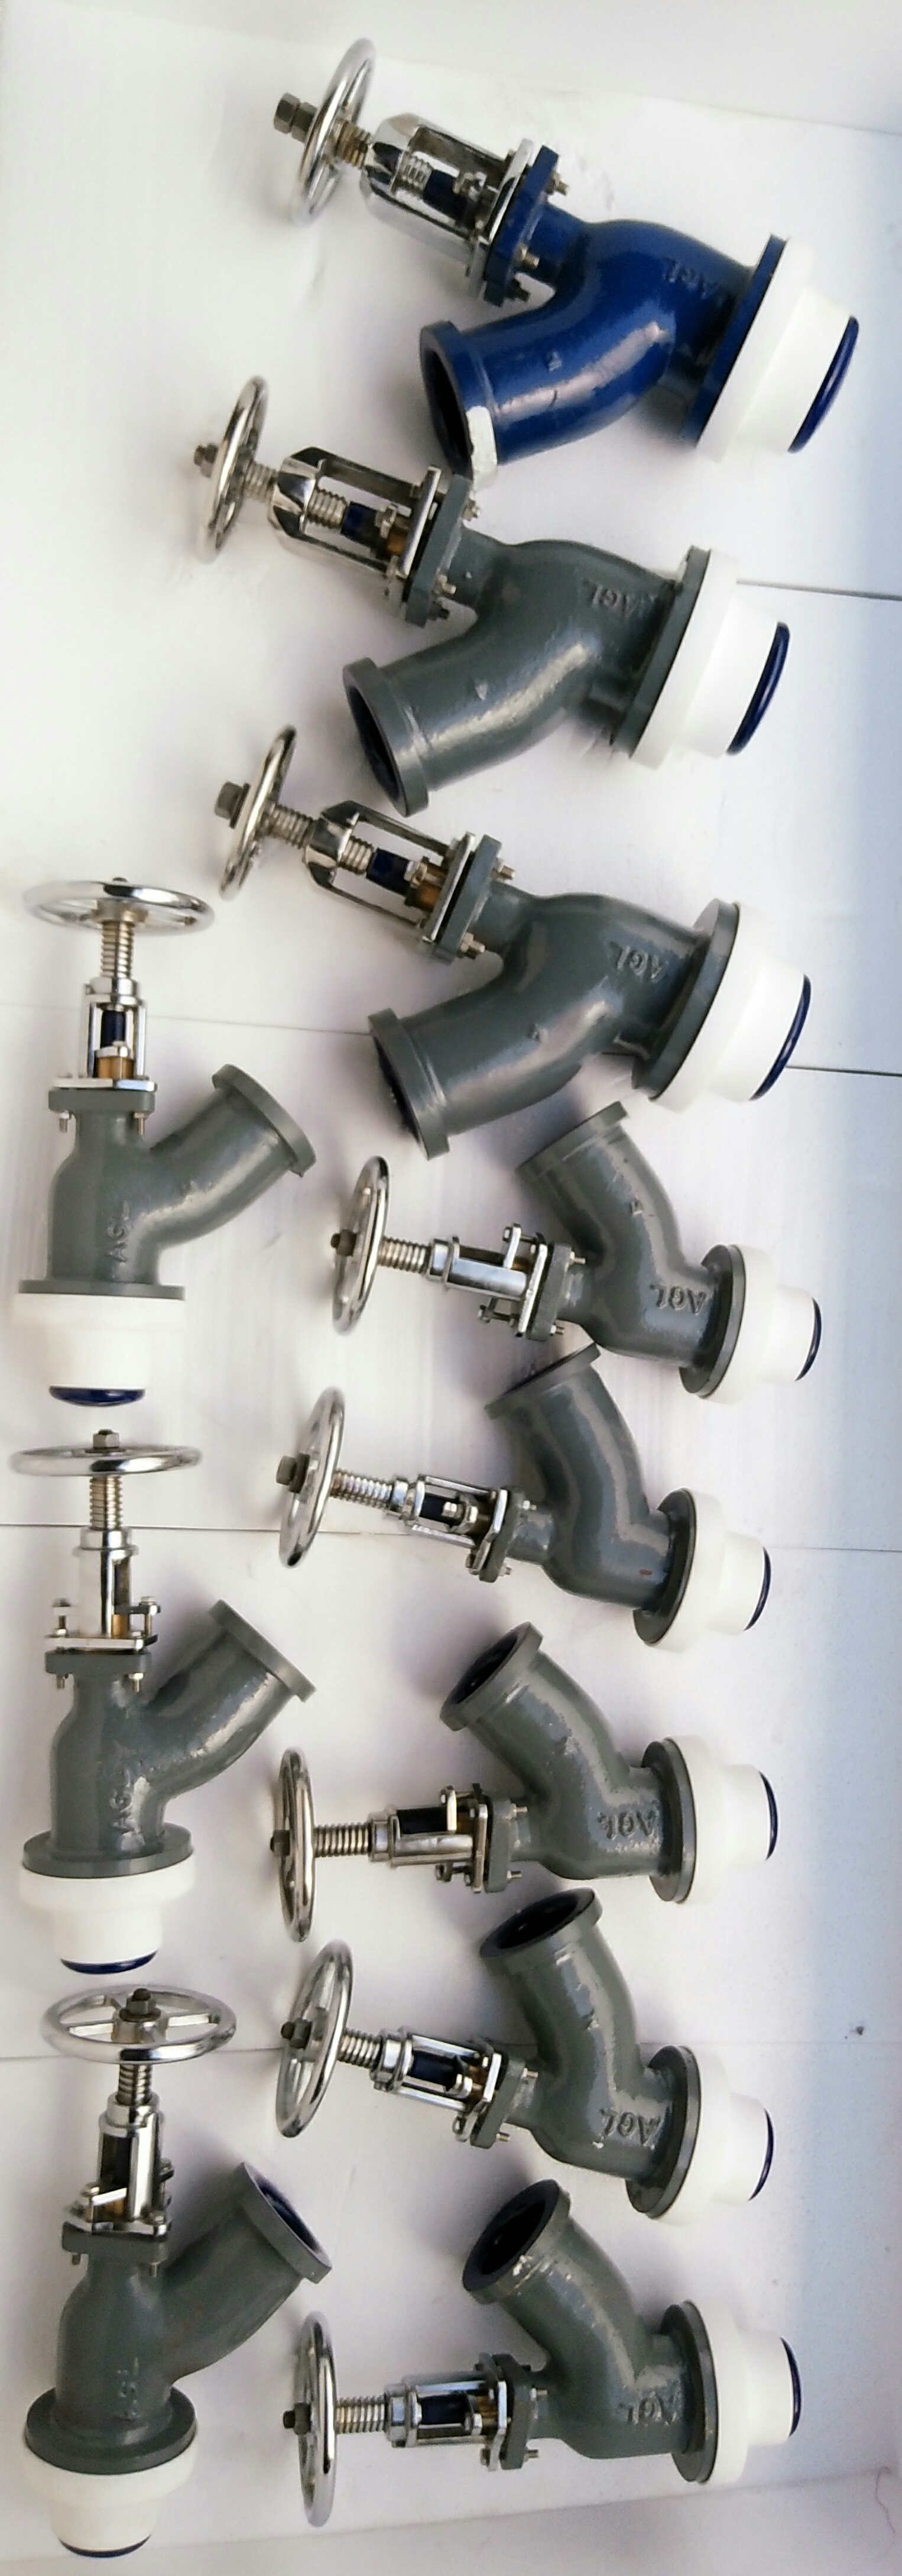 Glass Lined Reactor Valves